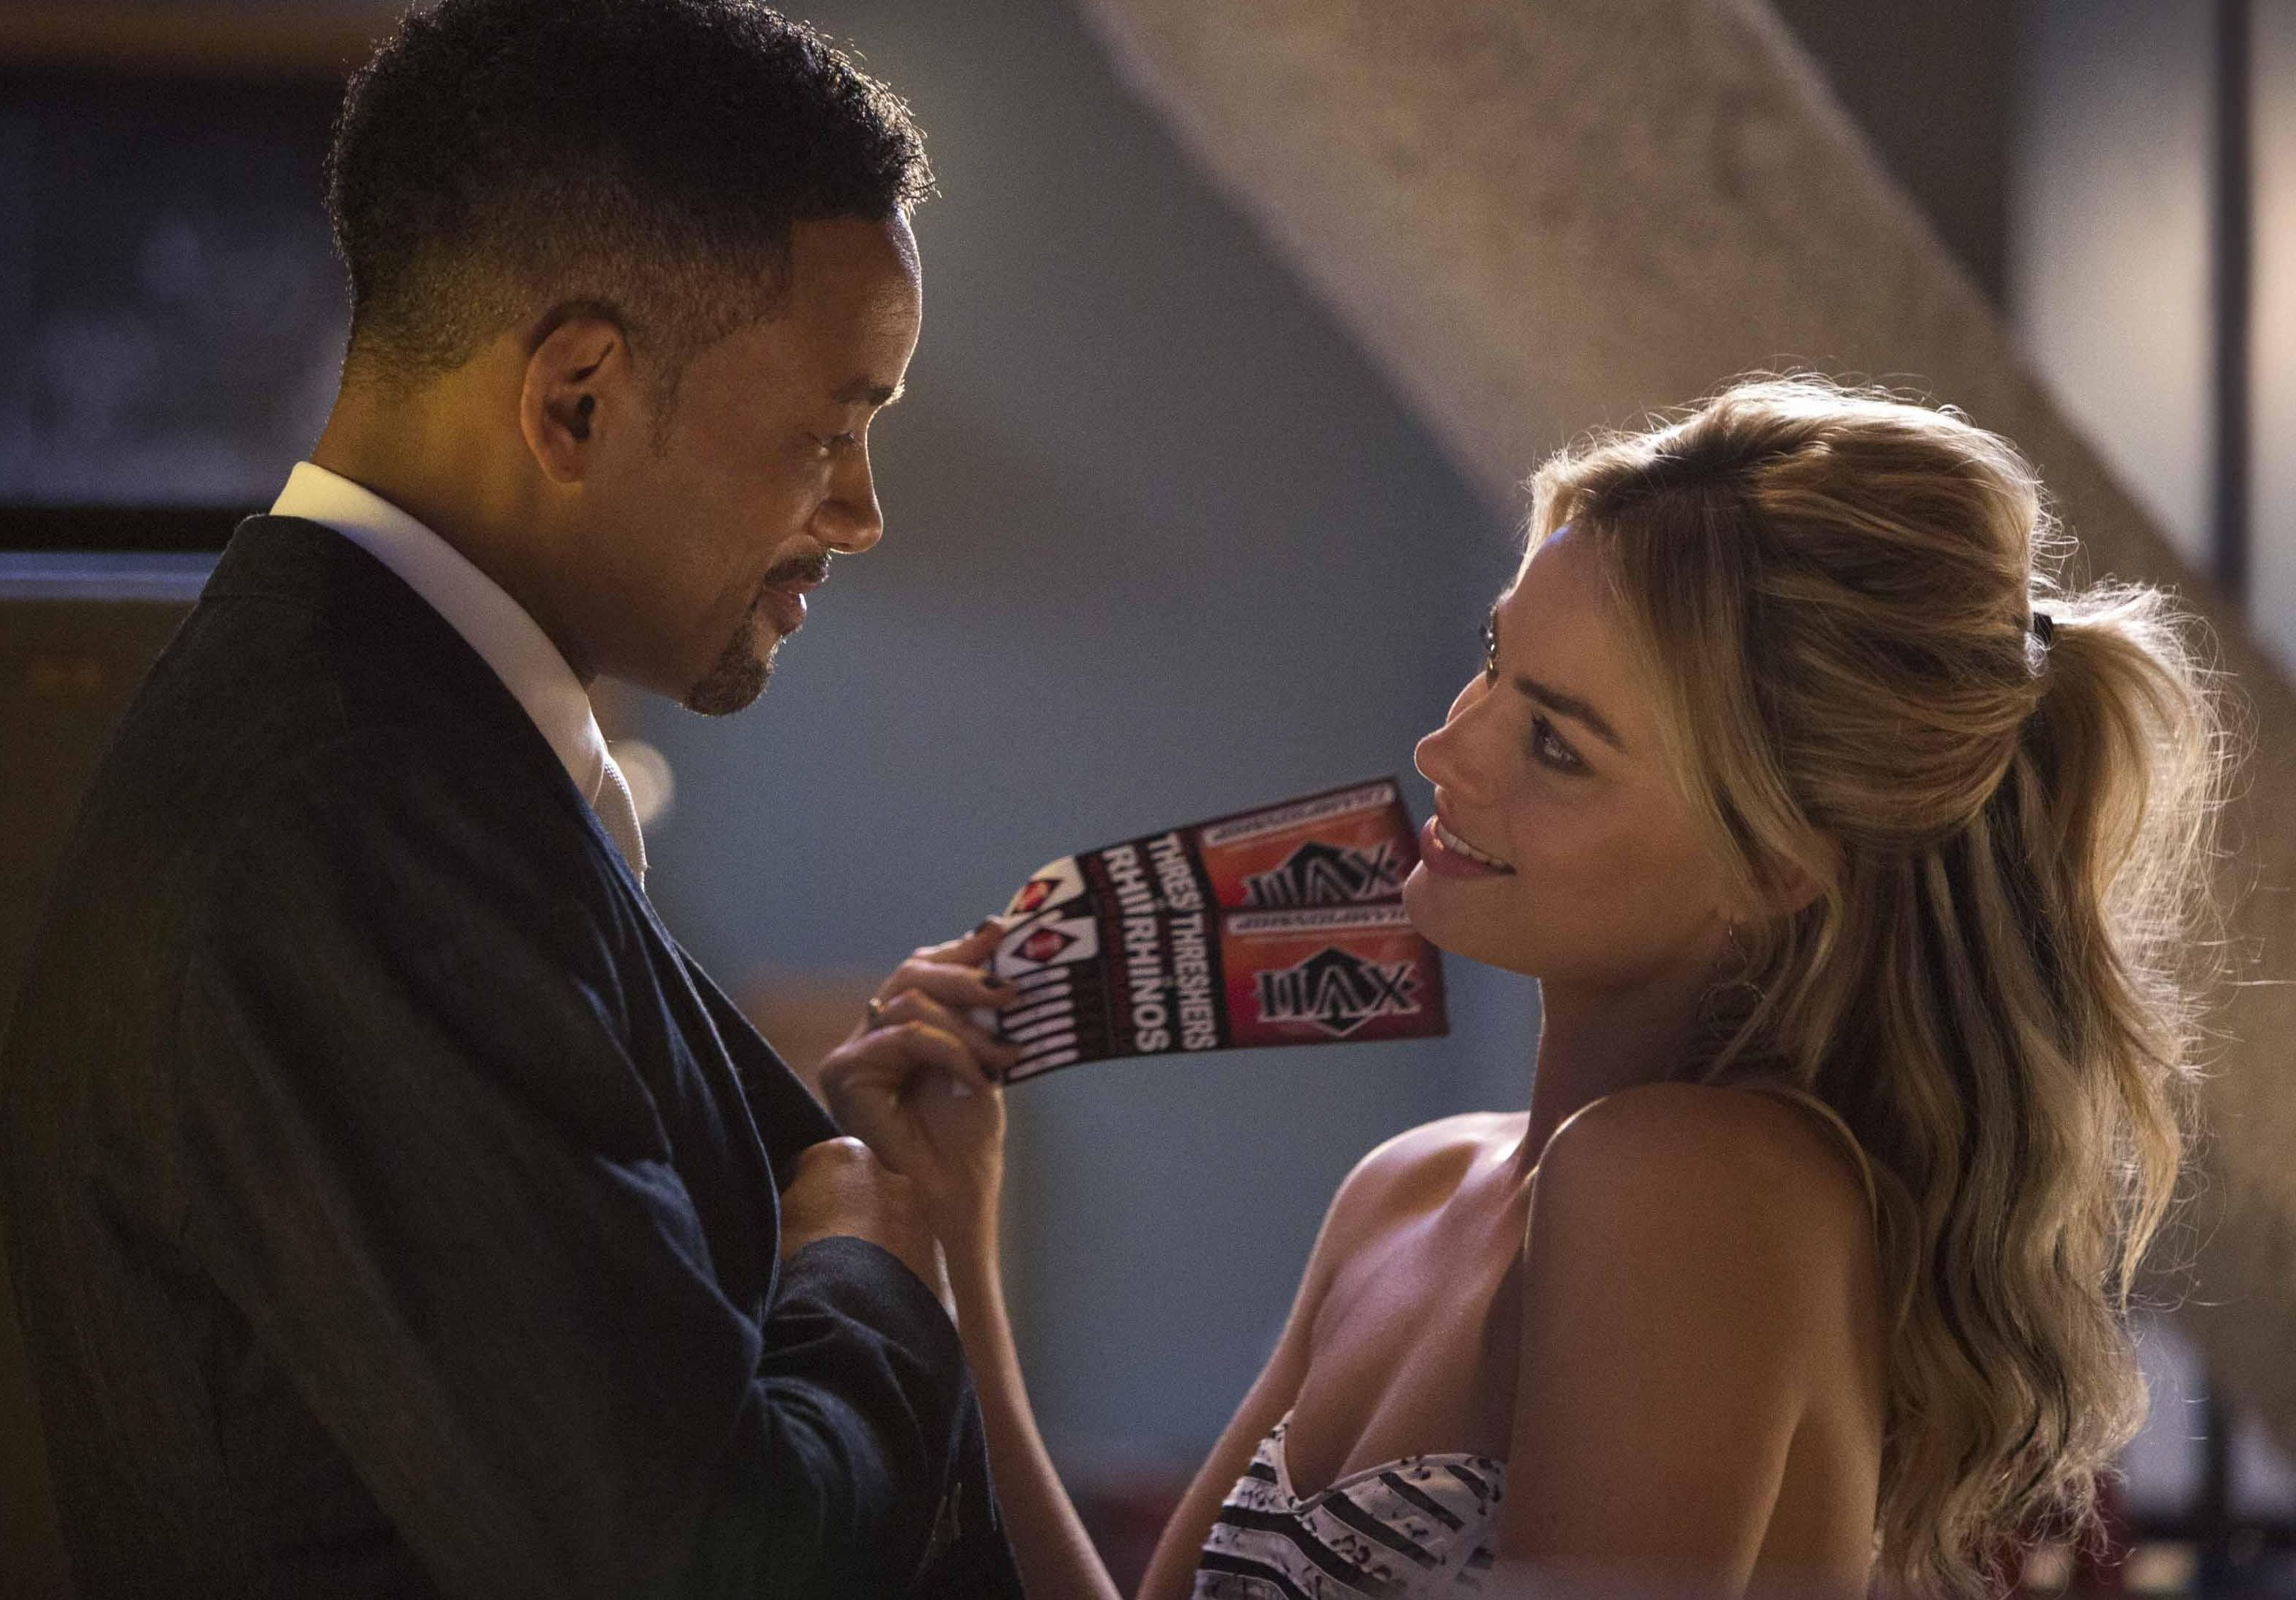 Will Smith and Margot Robbie and some Threshers Rhinos ticke